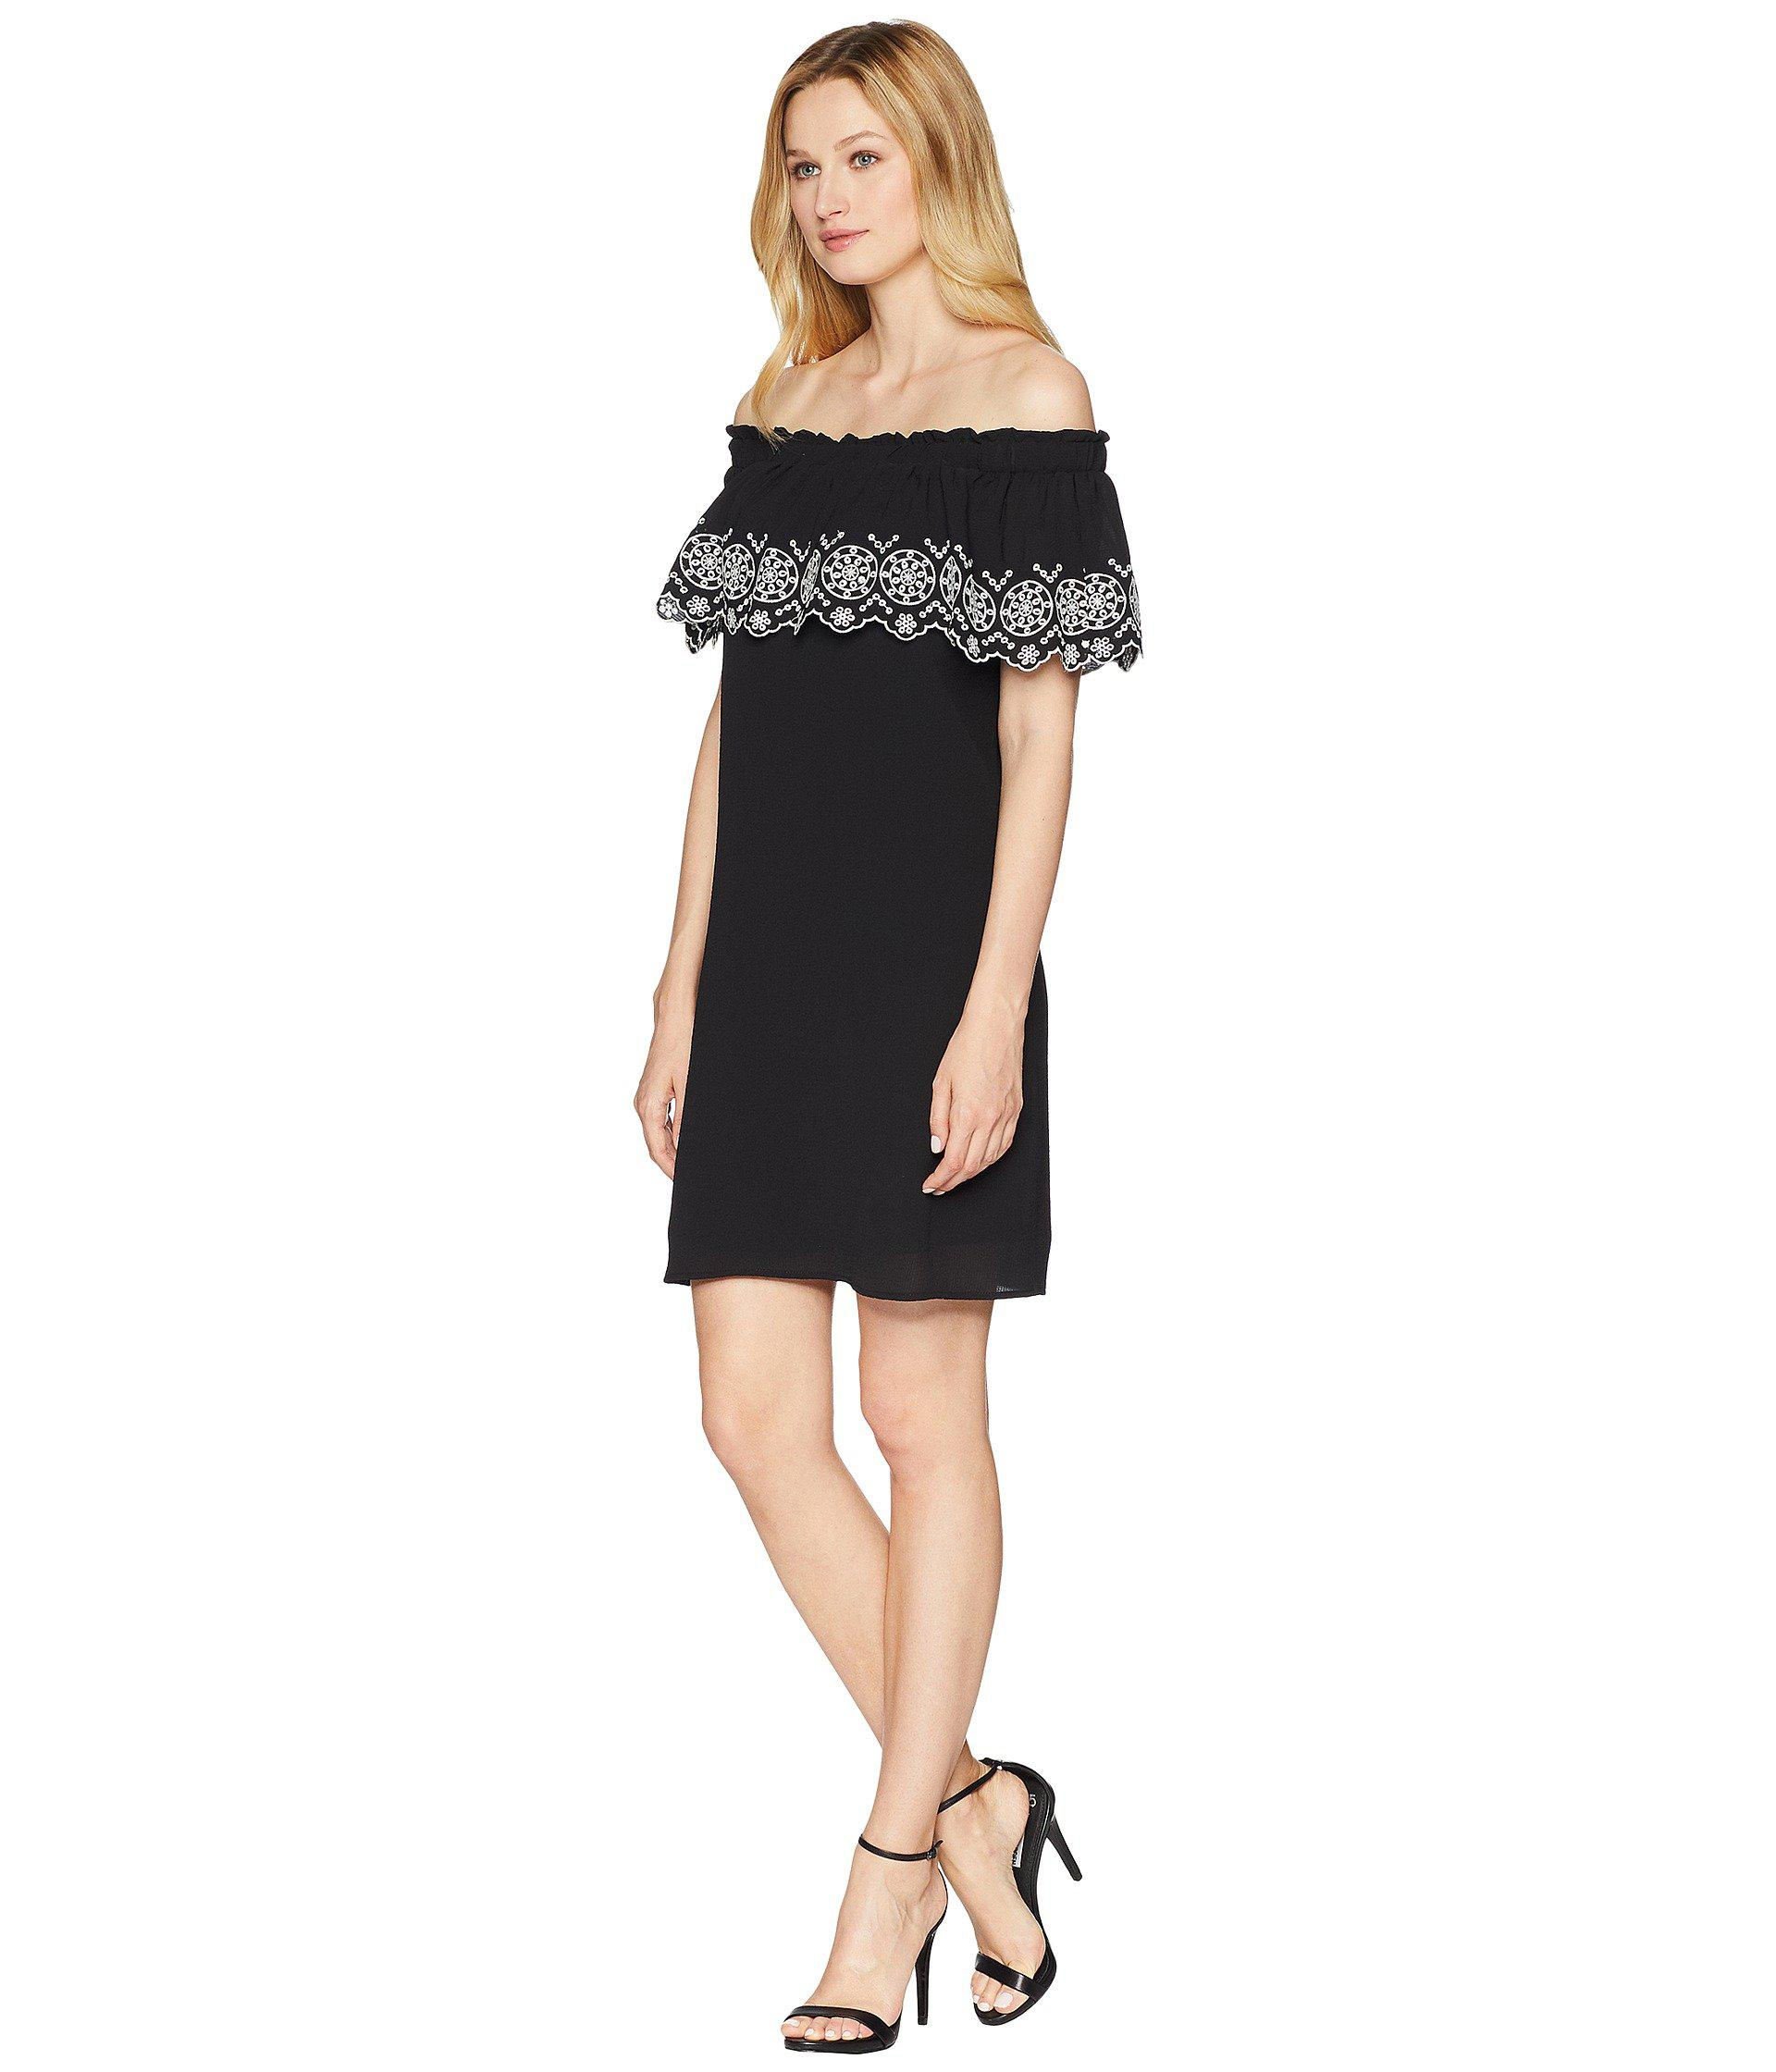 ab40f4d2aca Lyst - Cece Tenley - Off The Shoulder Embroidered Dress in Black - Save 70%